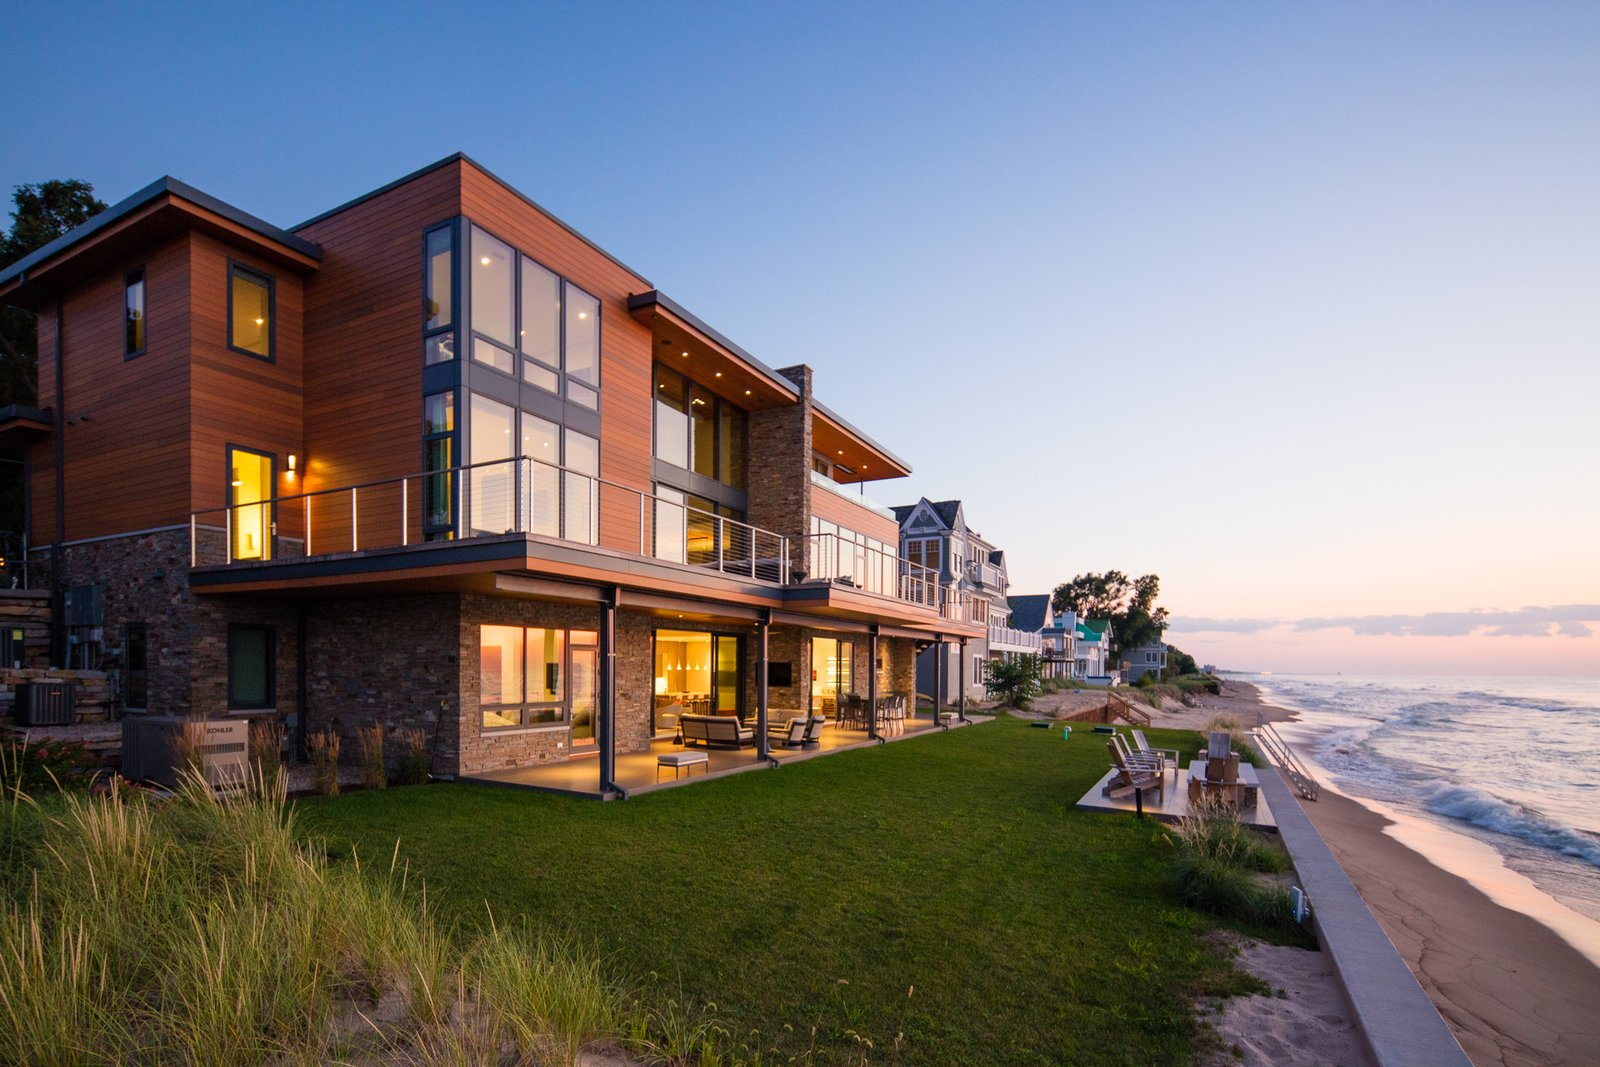 Exterior, Wood Siding Material, Stone Siding Material, House Building Type, Flat RoofLine, Beach House Building Type, and Metal Roof Material  Lucid Architecture's Favorites from Long Beach